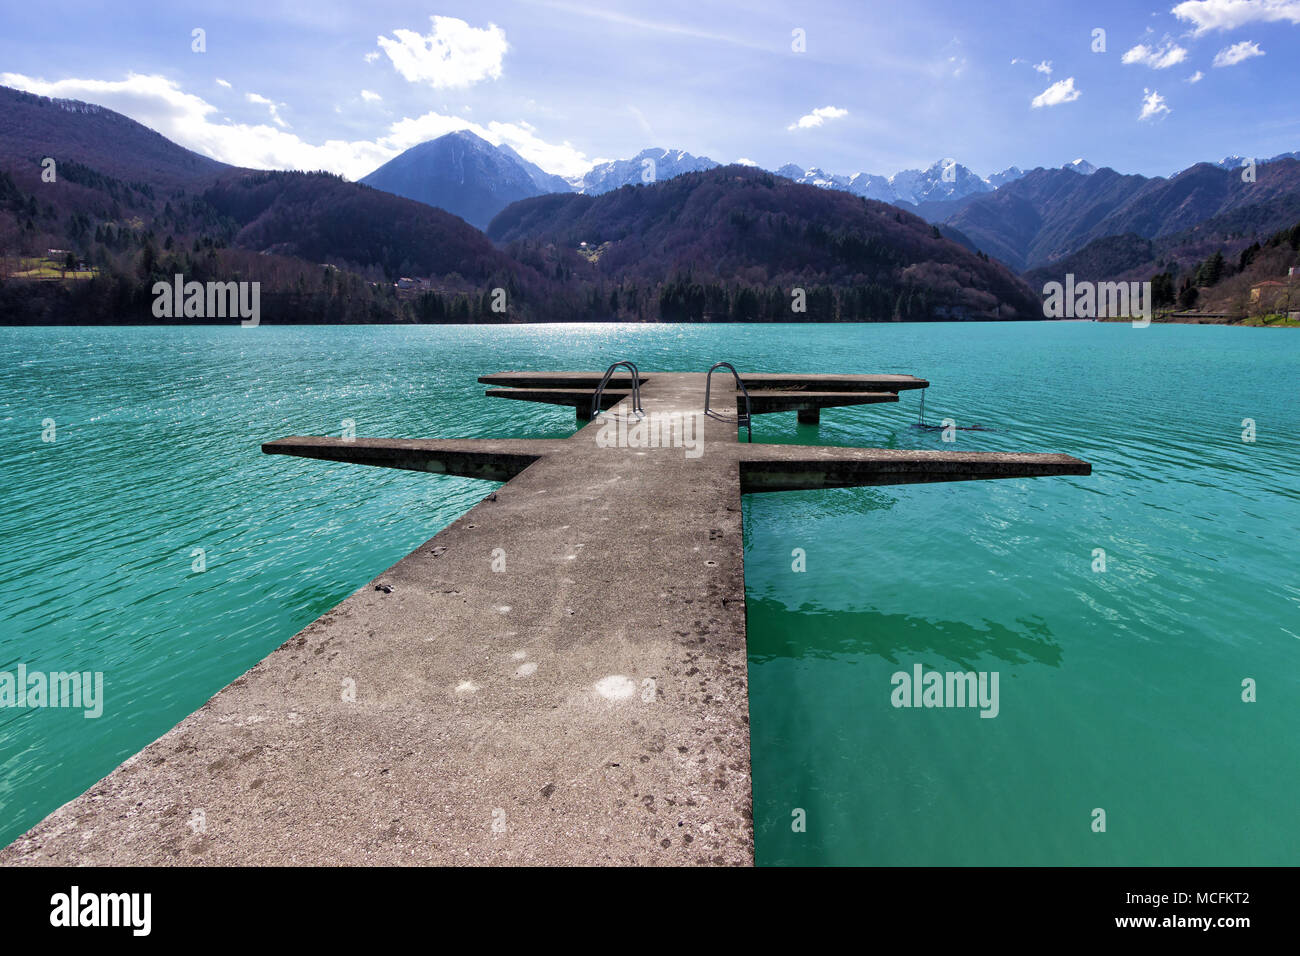 Italy, Valcellina. View of the Barcis lake's crystal water surrounded by mountains on the horizon Stock Photo